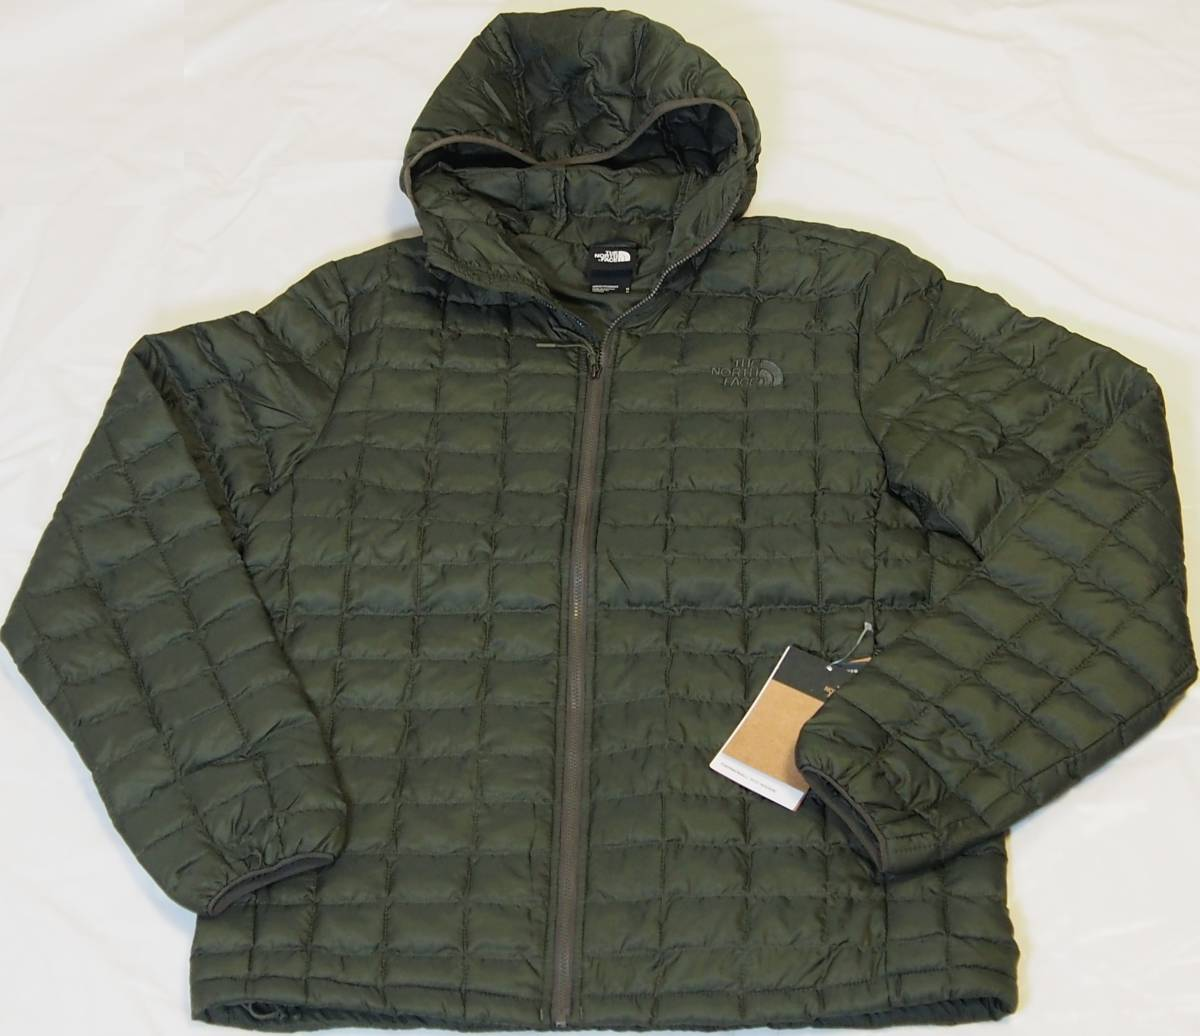 【USA購入、未使用タグ付】ノースフェイス メンズ Thermoball Eco ジャケット フード付 M グリーン The North Face NEW TAUPE GREEN Hoodie_画像1